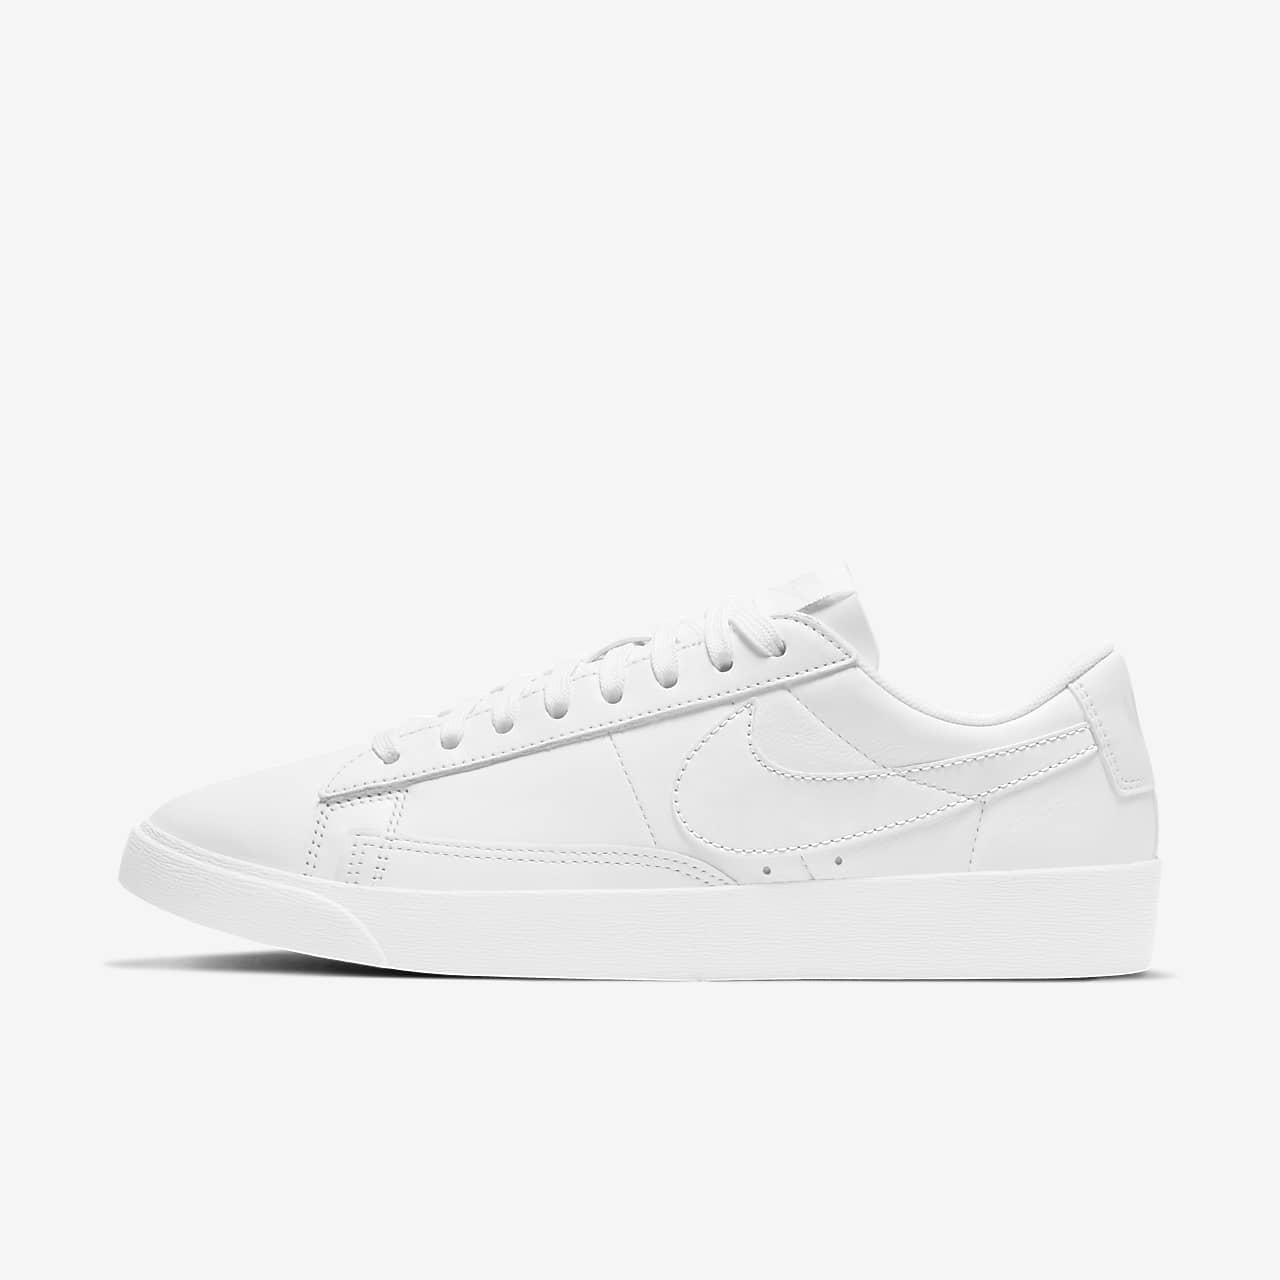 finest selection 75bfb 55c8c Nike Blazer City Low XS metallic